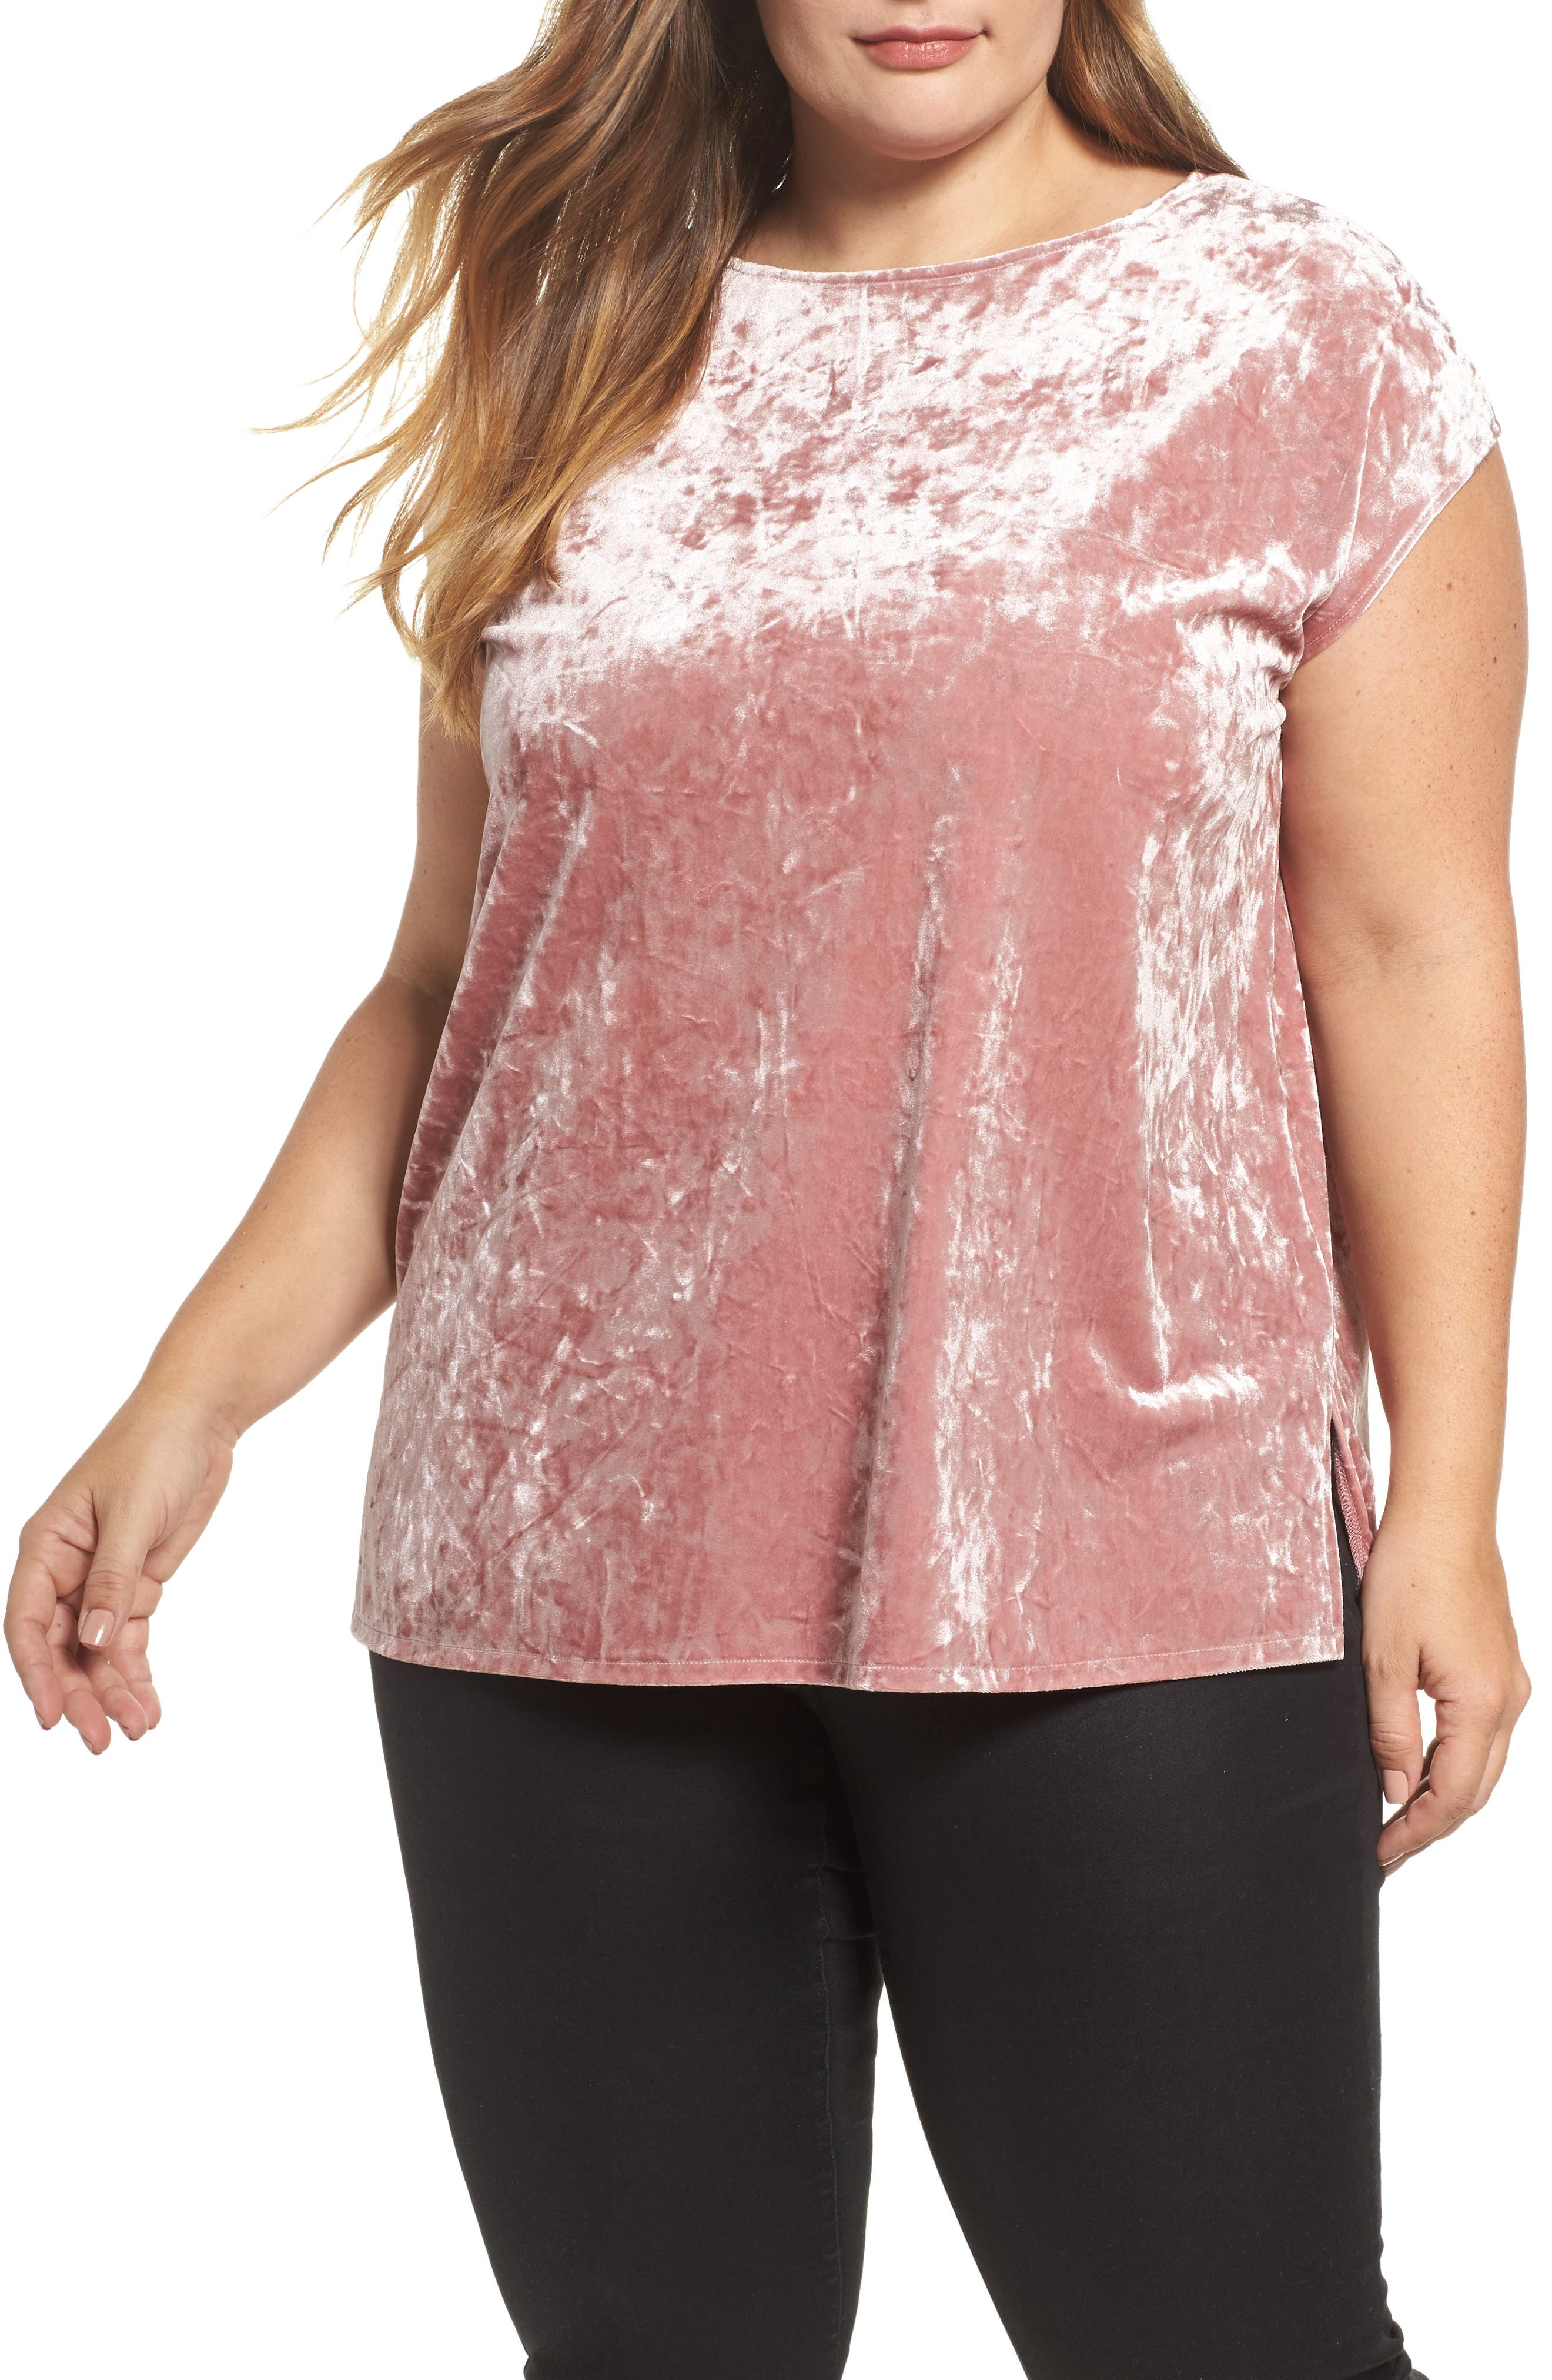 Main Image - Vince Camuto Crushed Velvet Knit Tee (Plus Size)